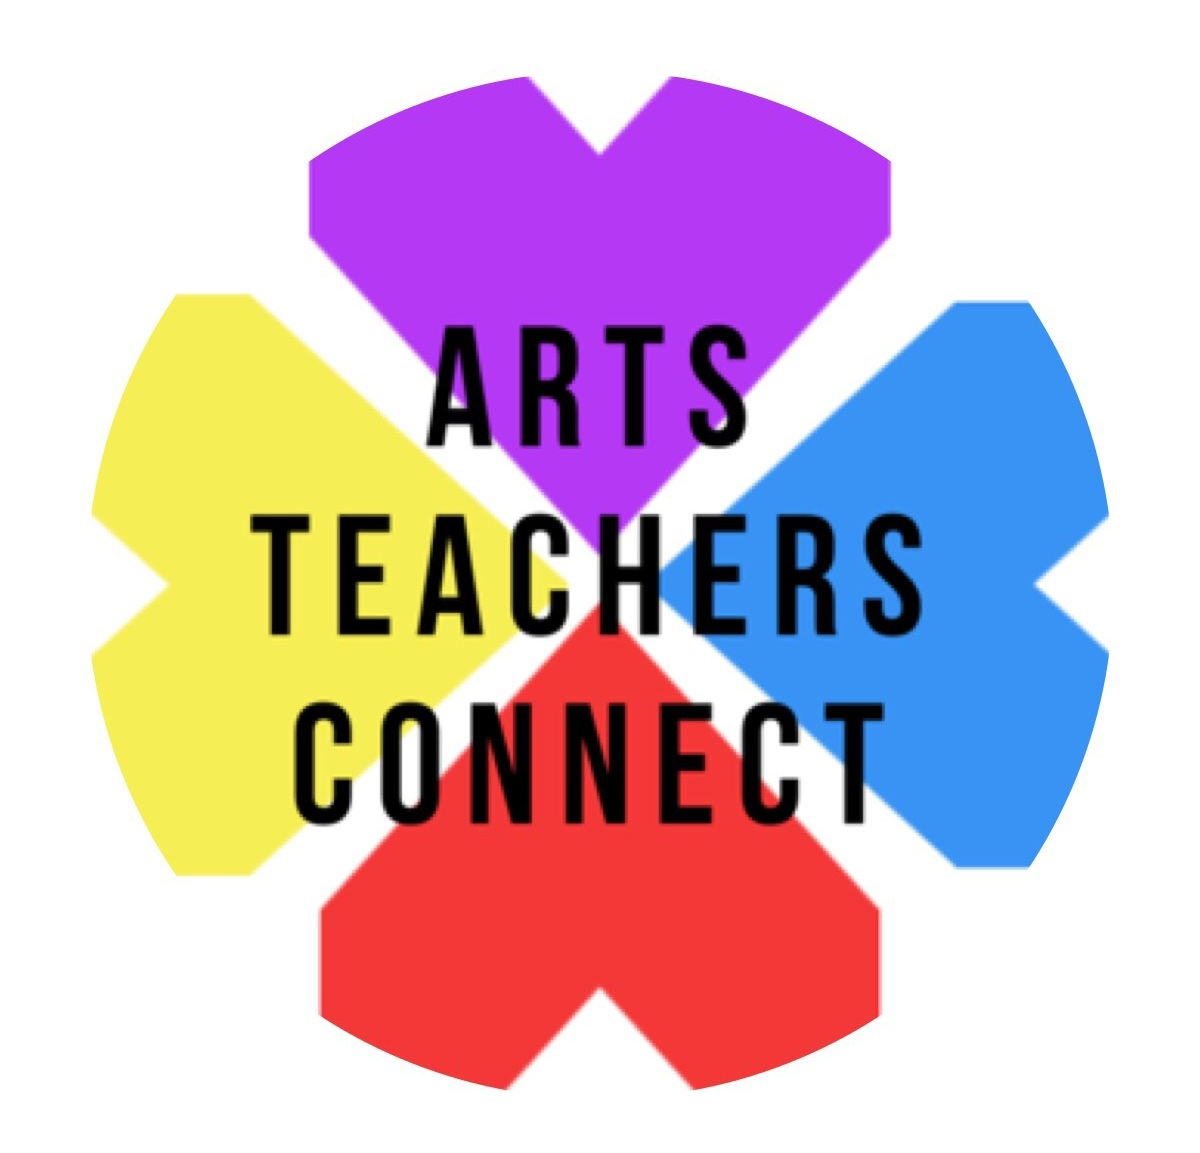 Arts Teachers Connect